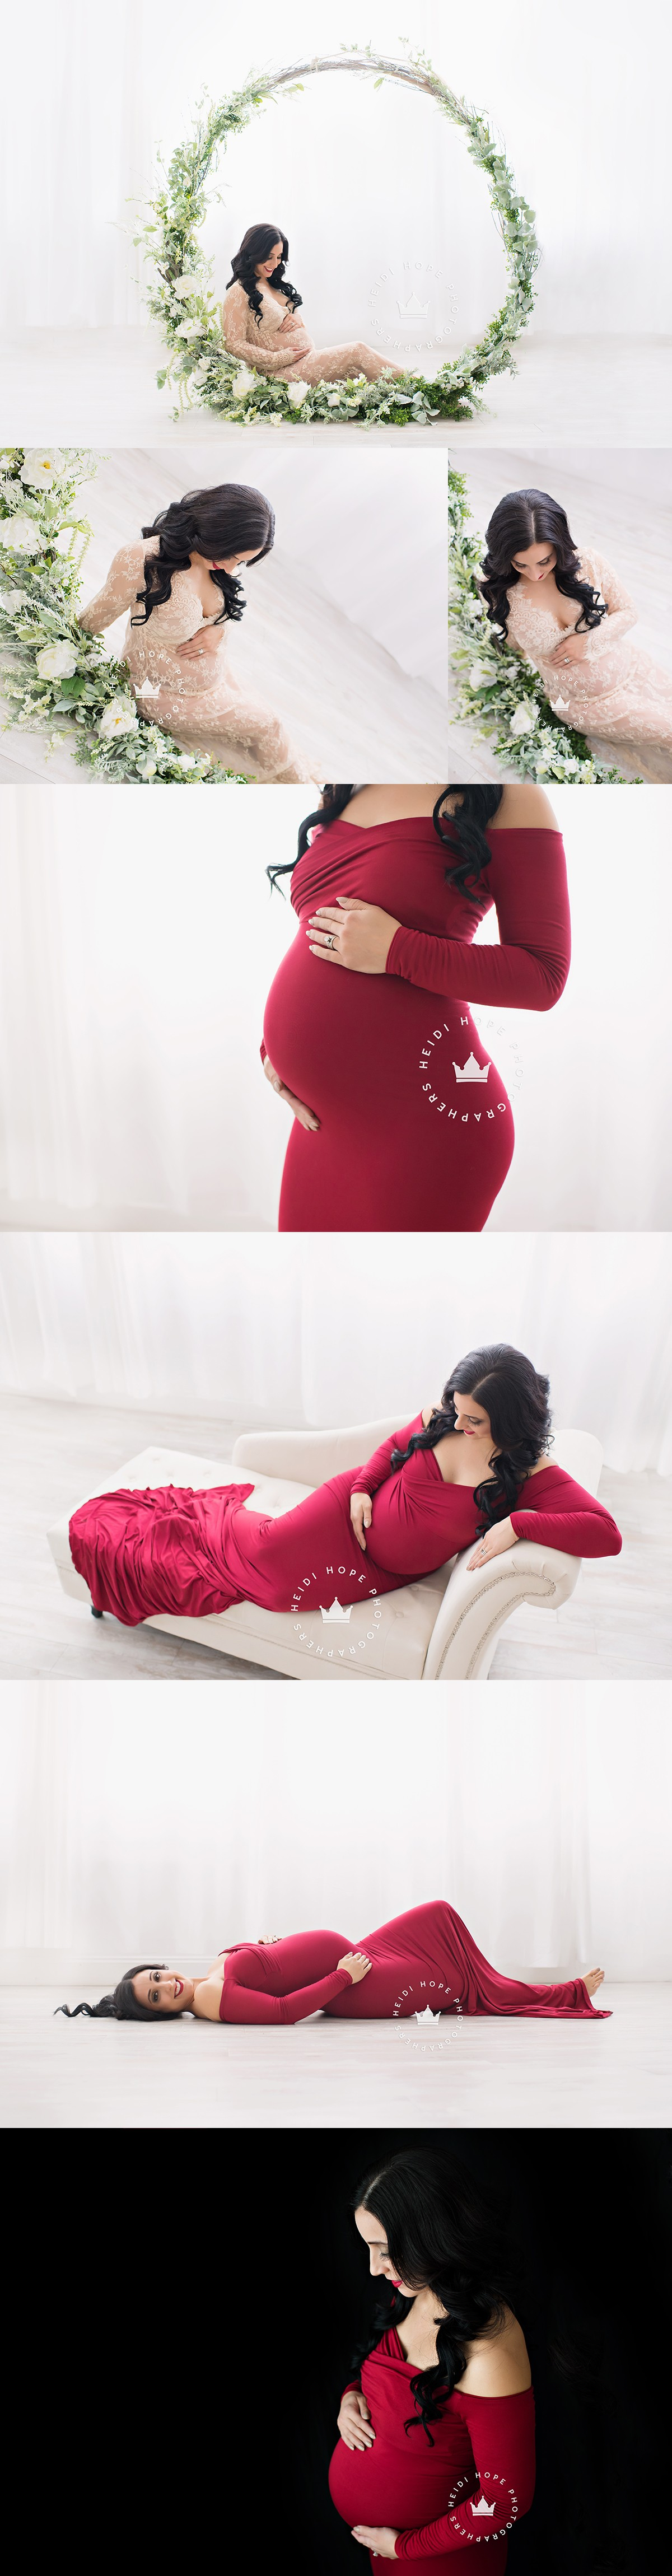 heidi hope rhode island maternity photographer